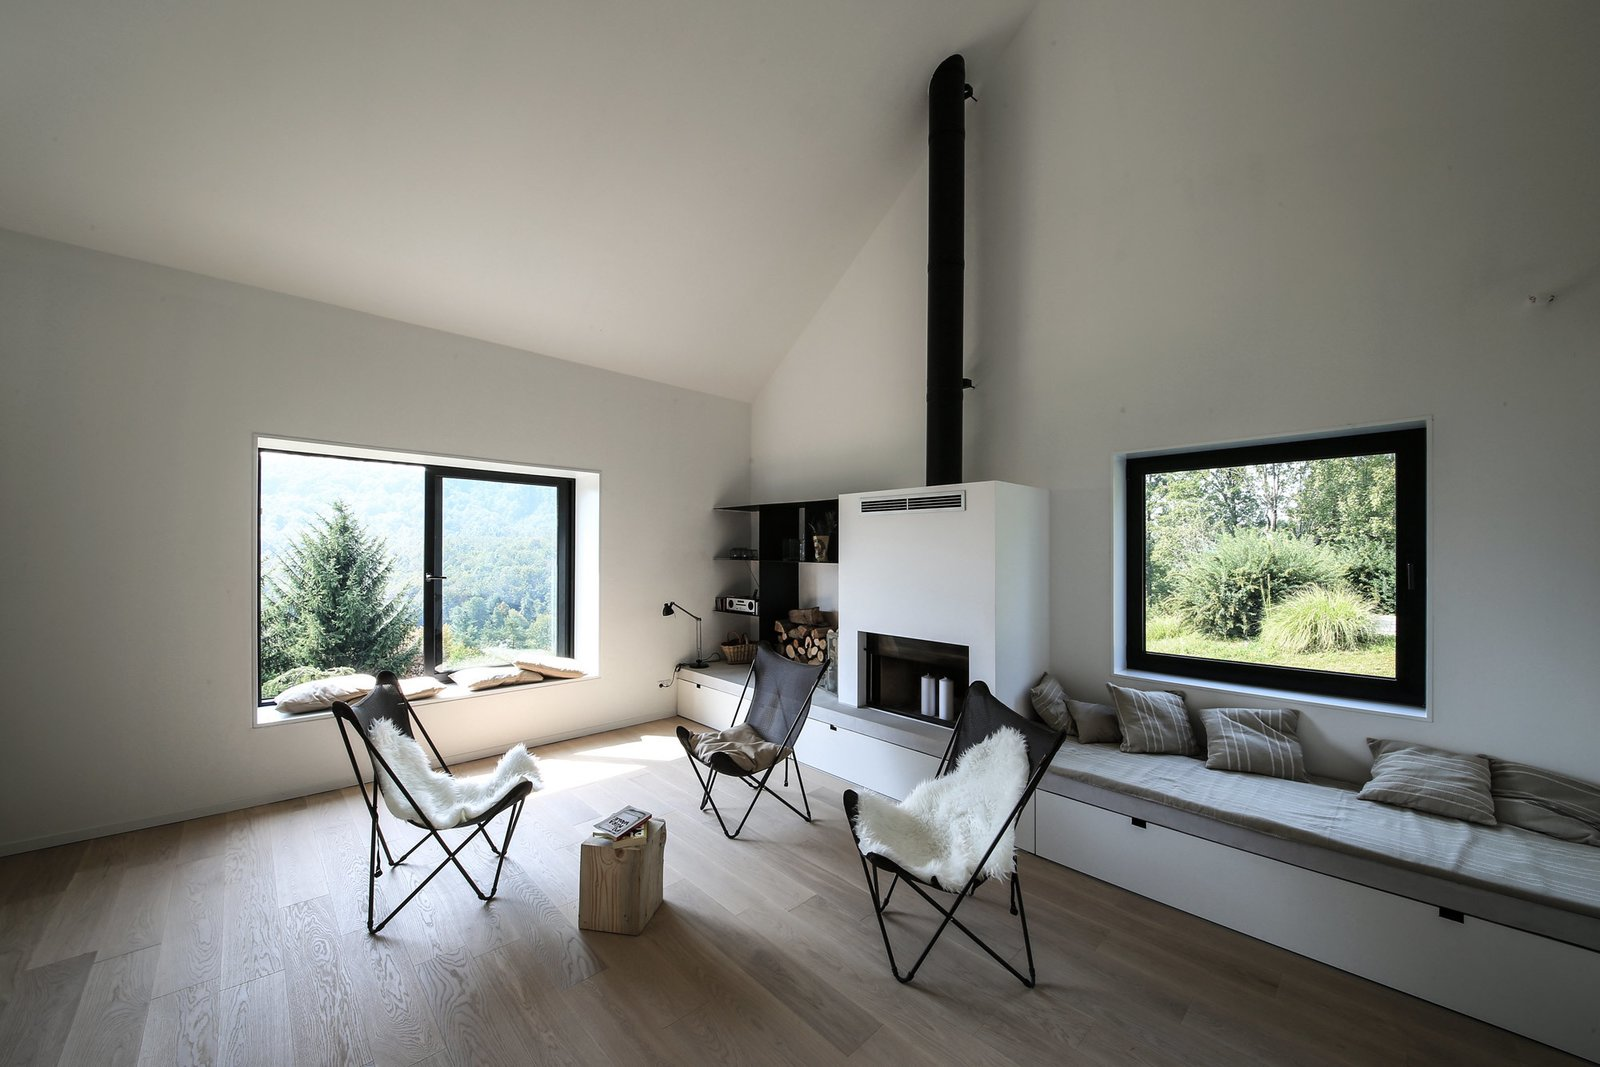 Living Room, Medium Hardwood Floor, Chair, Standard Layout Fireplace, and Bench  Photo 8 of 12 in Gorski Kotar House